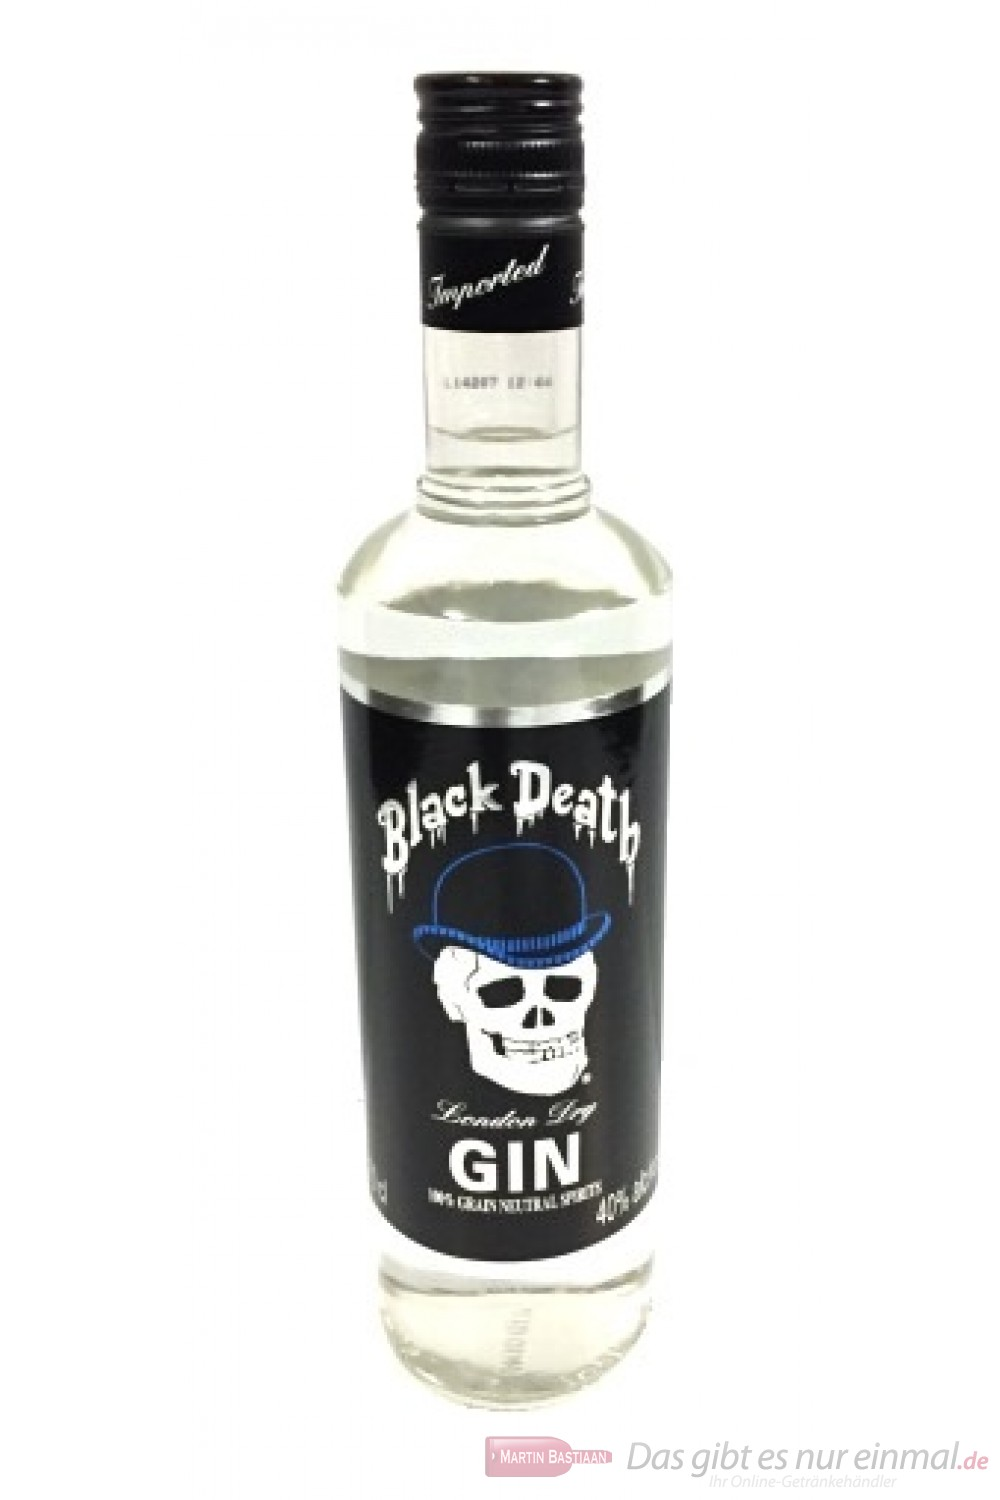 Black Death Gin